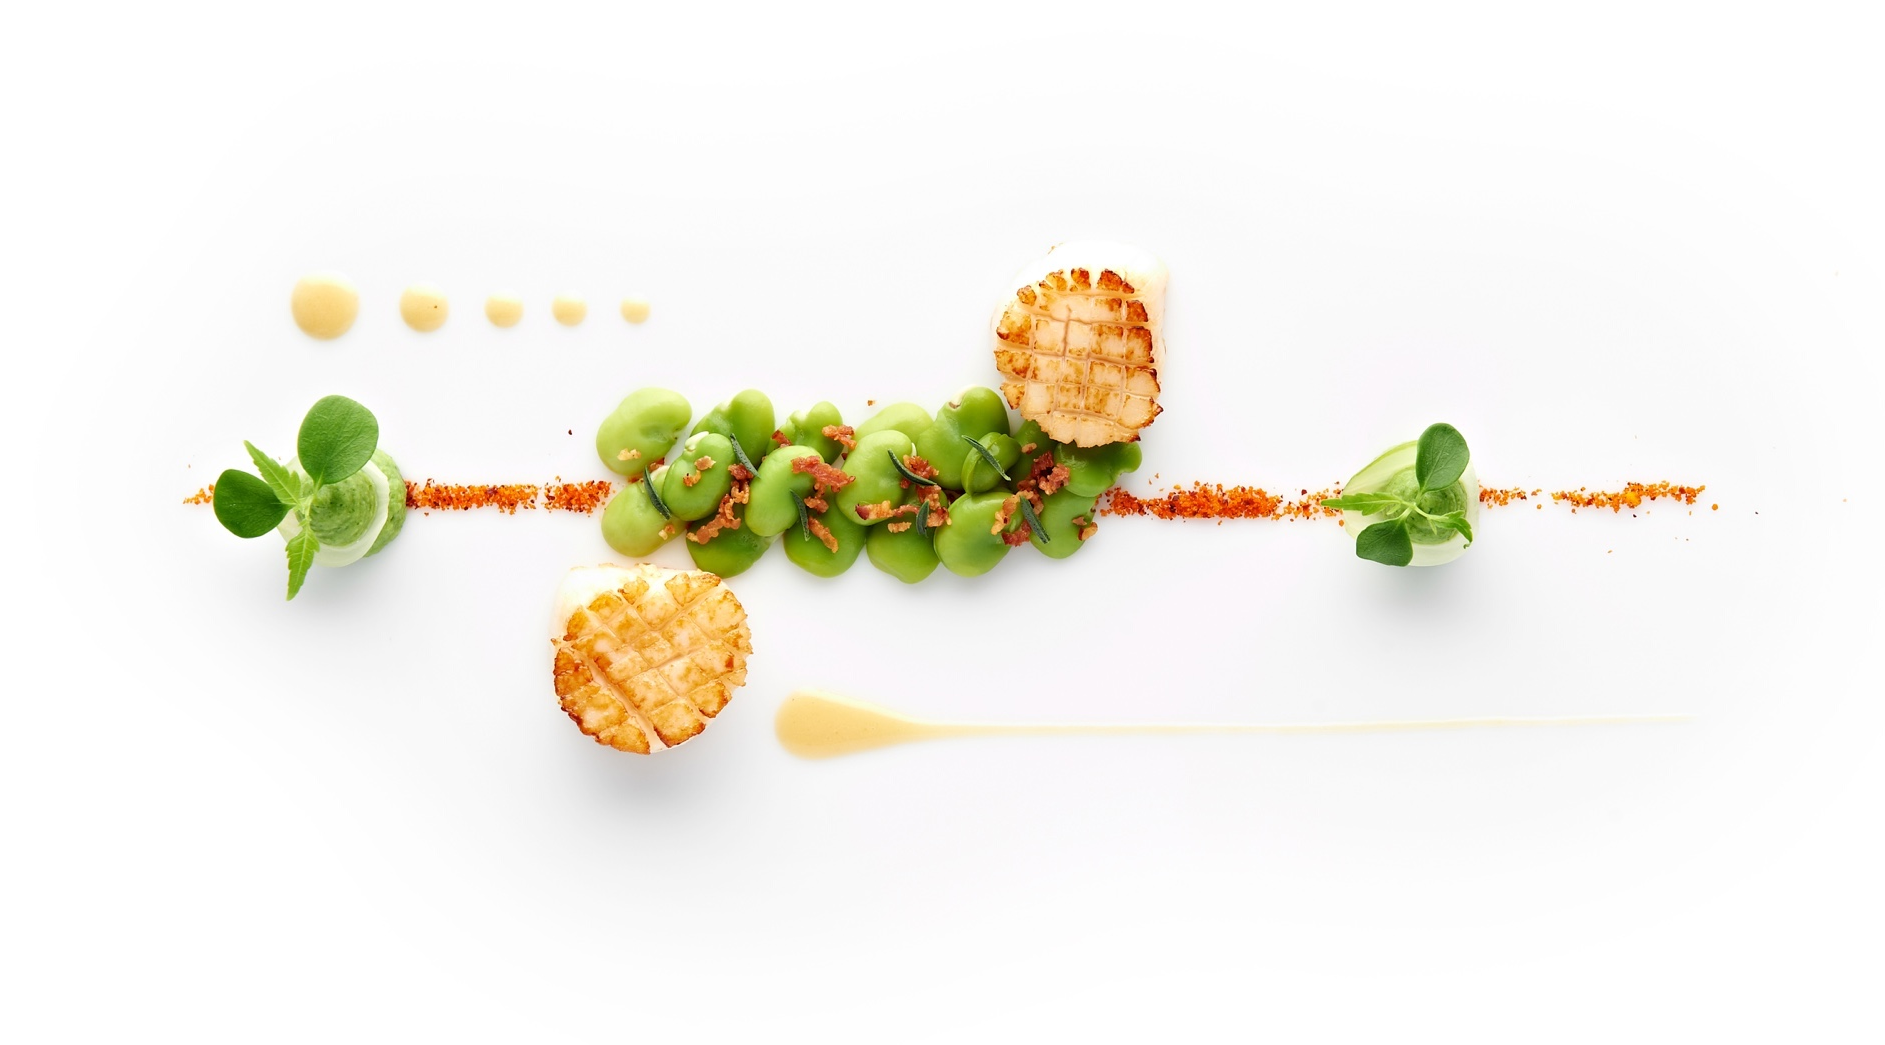 Sautéed Scallops, Broad Beans with Smoked Bacon, Espelette Pepper And Caramelized Hazelnuts